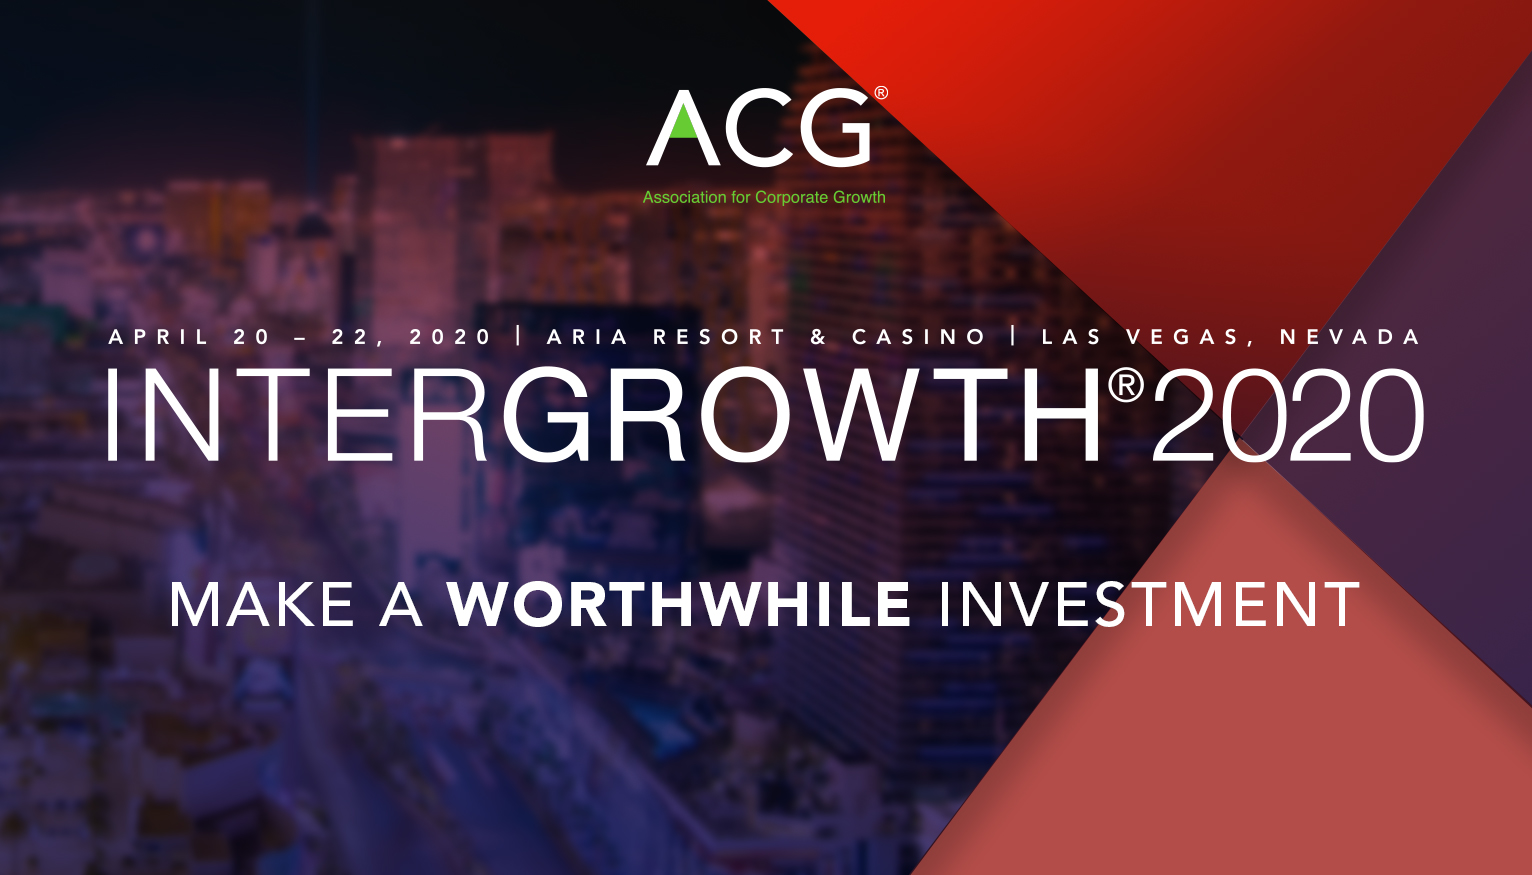 InterGrowth® 2020 | Make a Worthwhile Investment